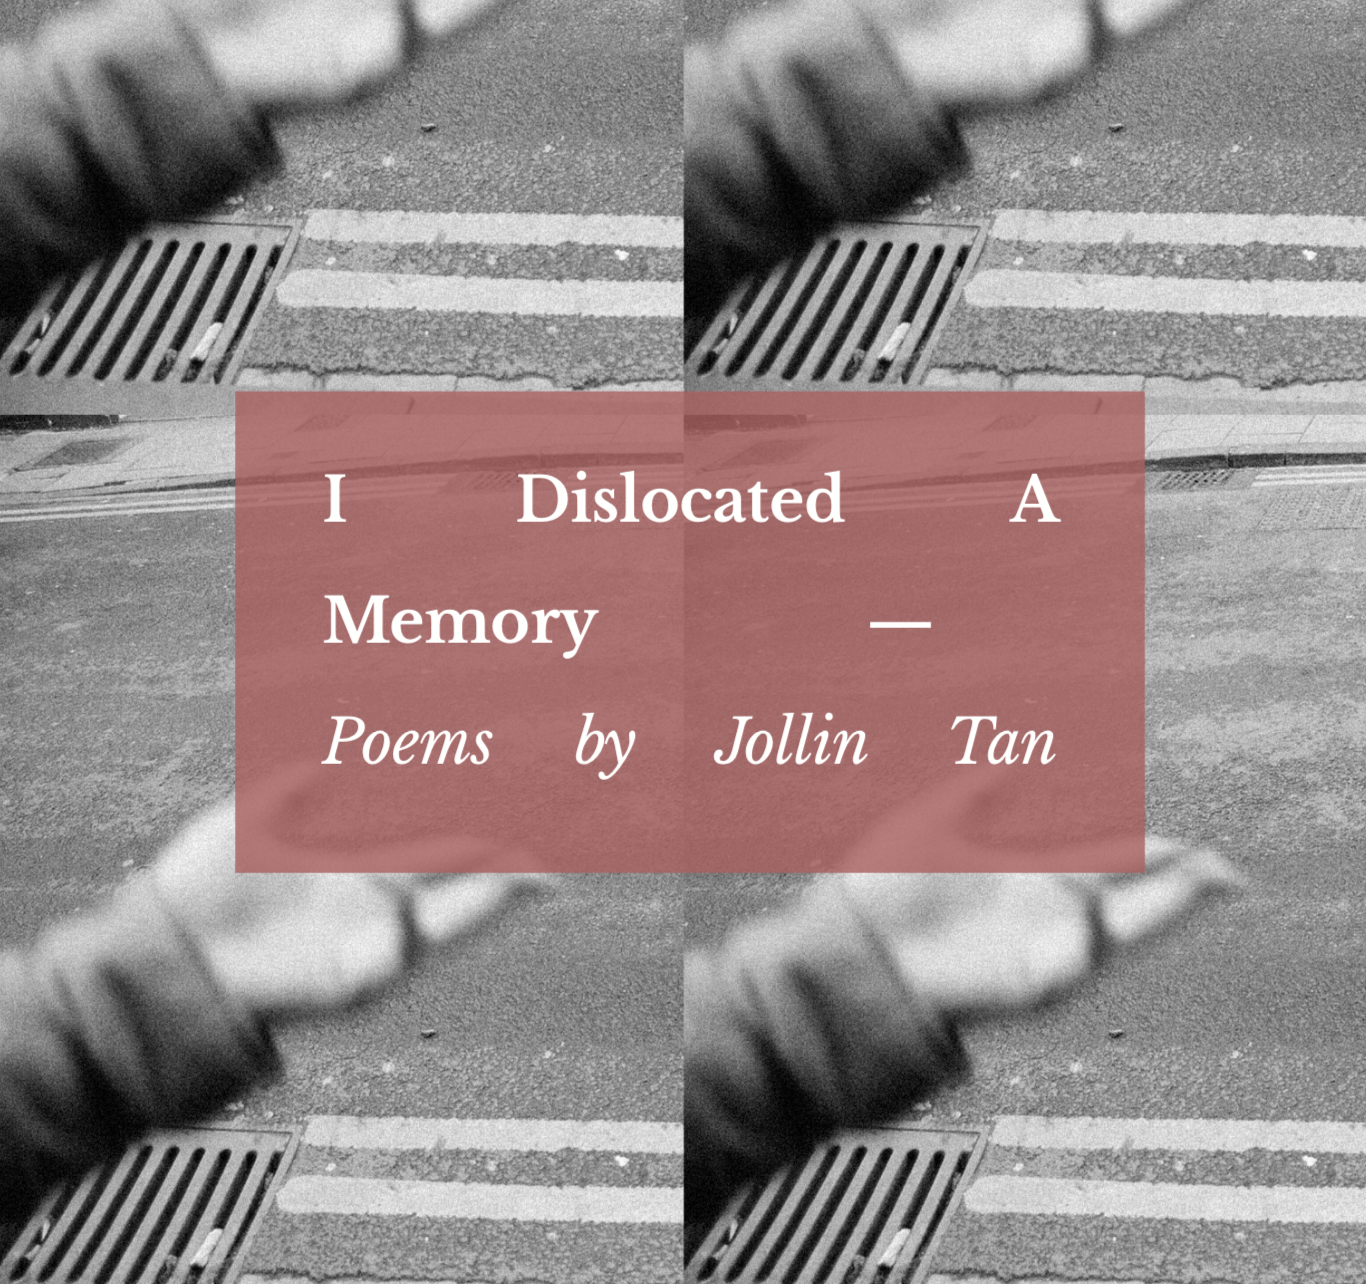 Upcoming: I Dislocated A Memory - I Dislocated A Memoryis Jollin's third collection of poetry, as yet unpublished and still in its finishing stages. The poems in this collection remain intensely personal but depart from Jollin's earlier style, which she self-deprecatingly refers to as